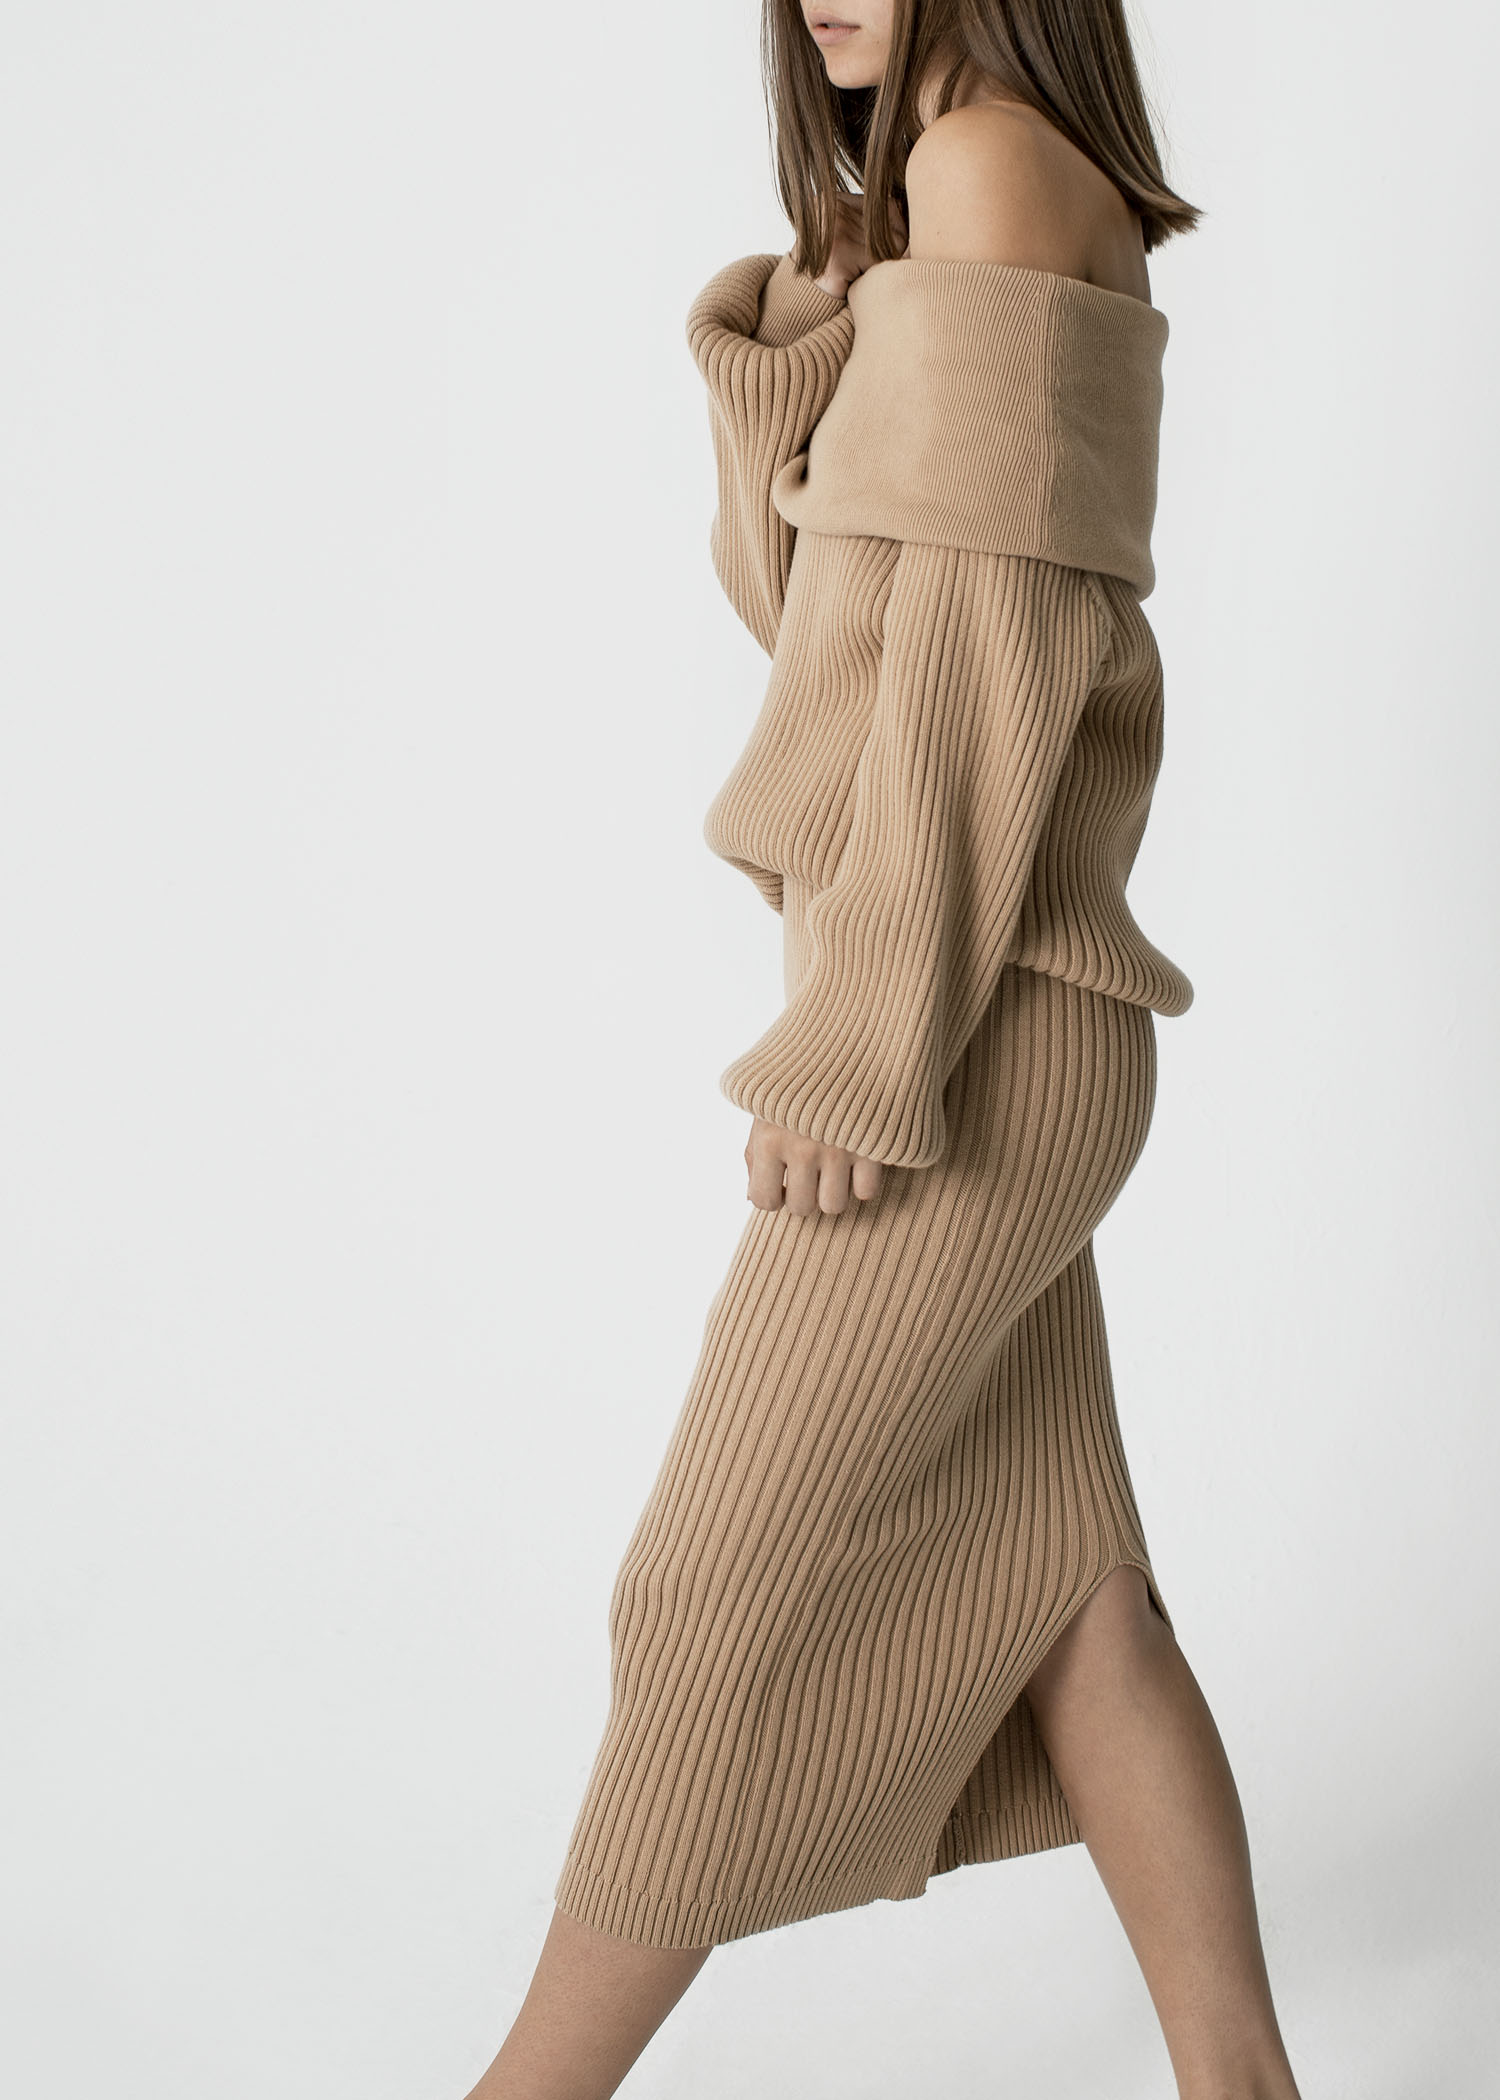 byTSANG season II knitted off shoulder sweater and skirt in biscotti